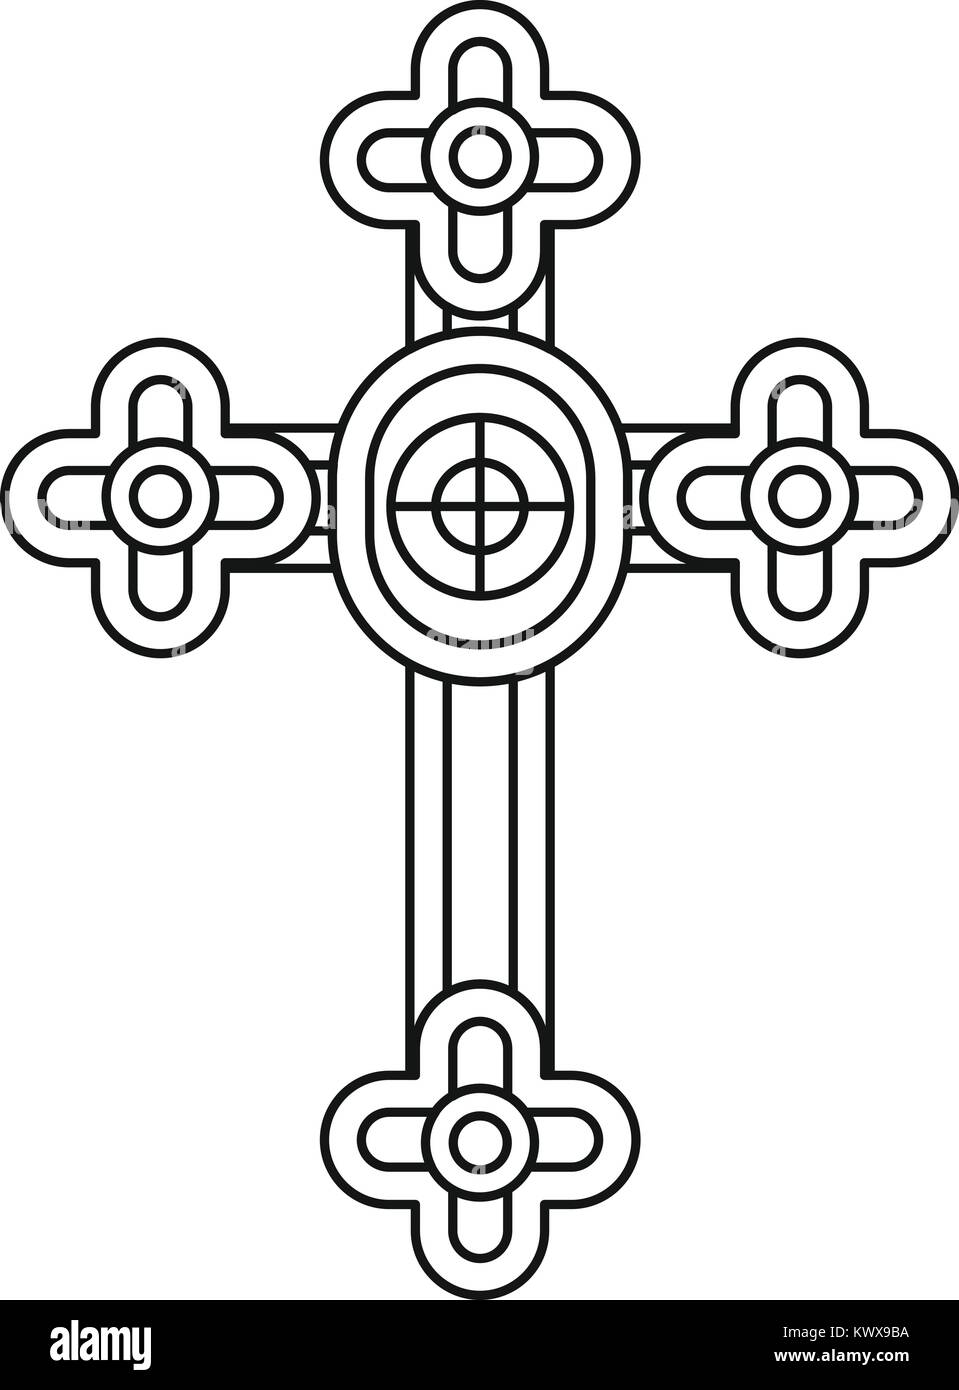 Christian cross jewelry icon, outline style - Stock Image